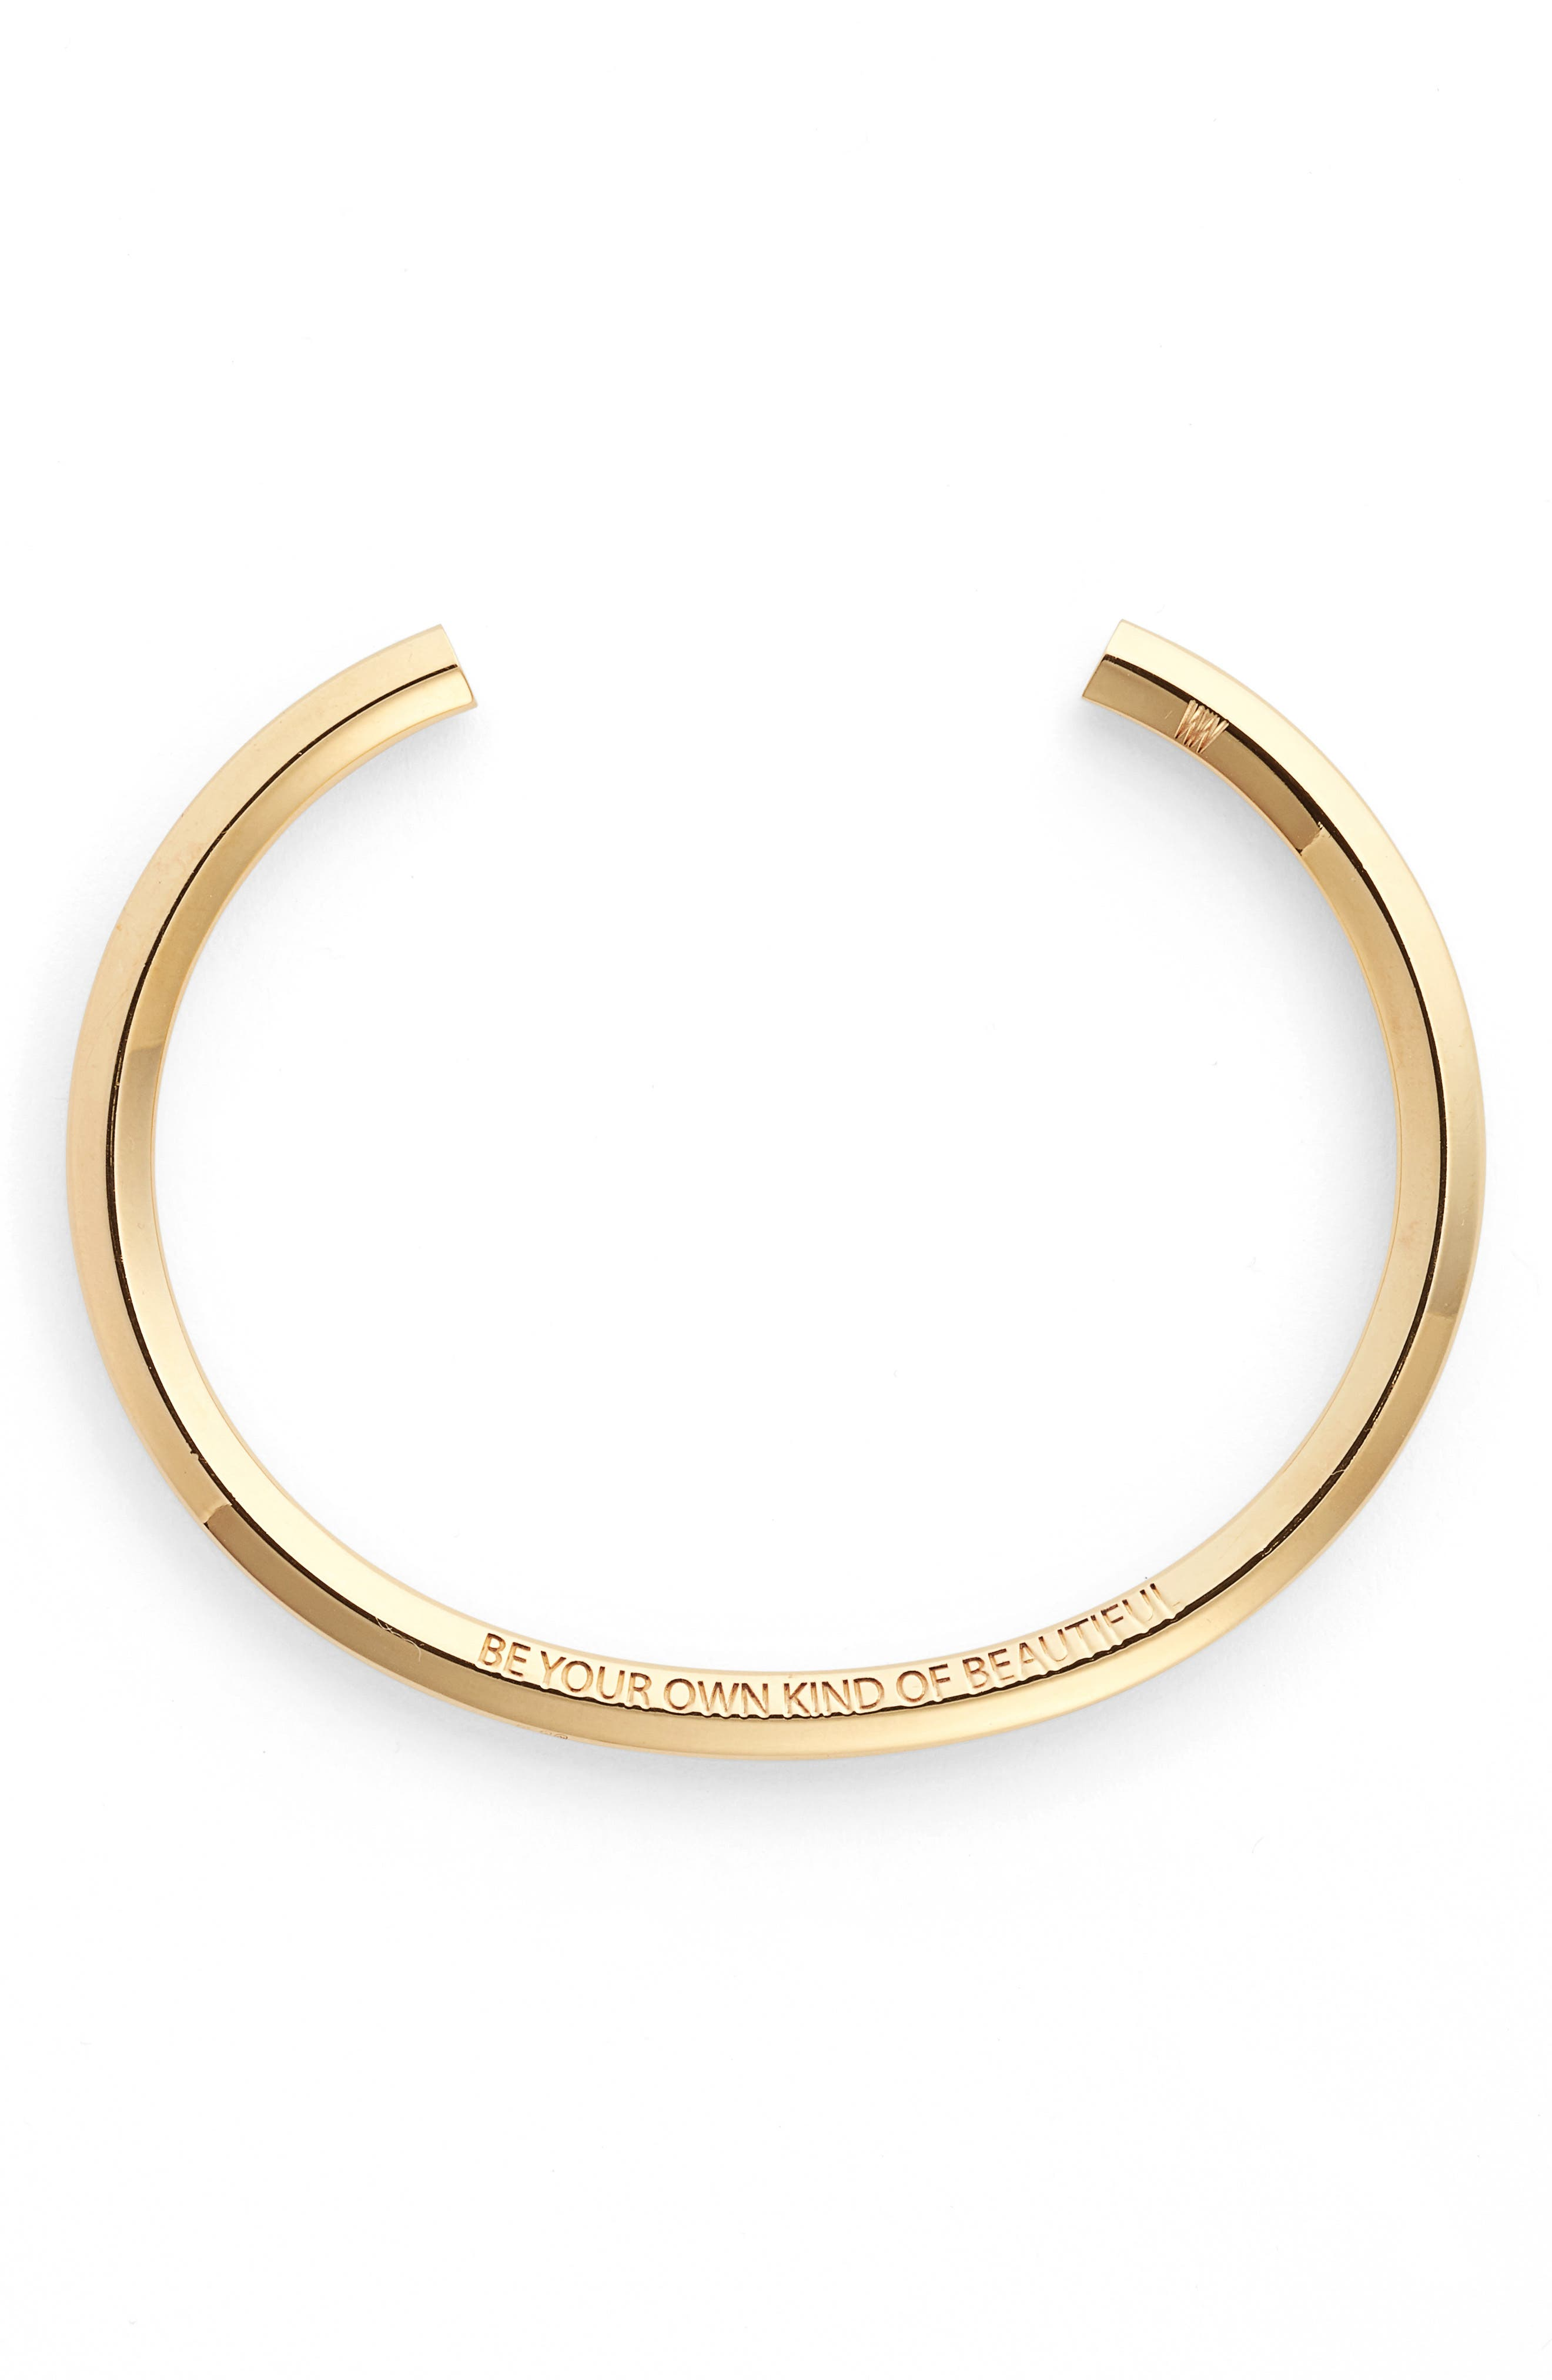 Main Image - Stella Valle Be Your Own Kind of Beautiful Cuff